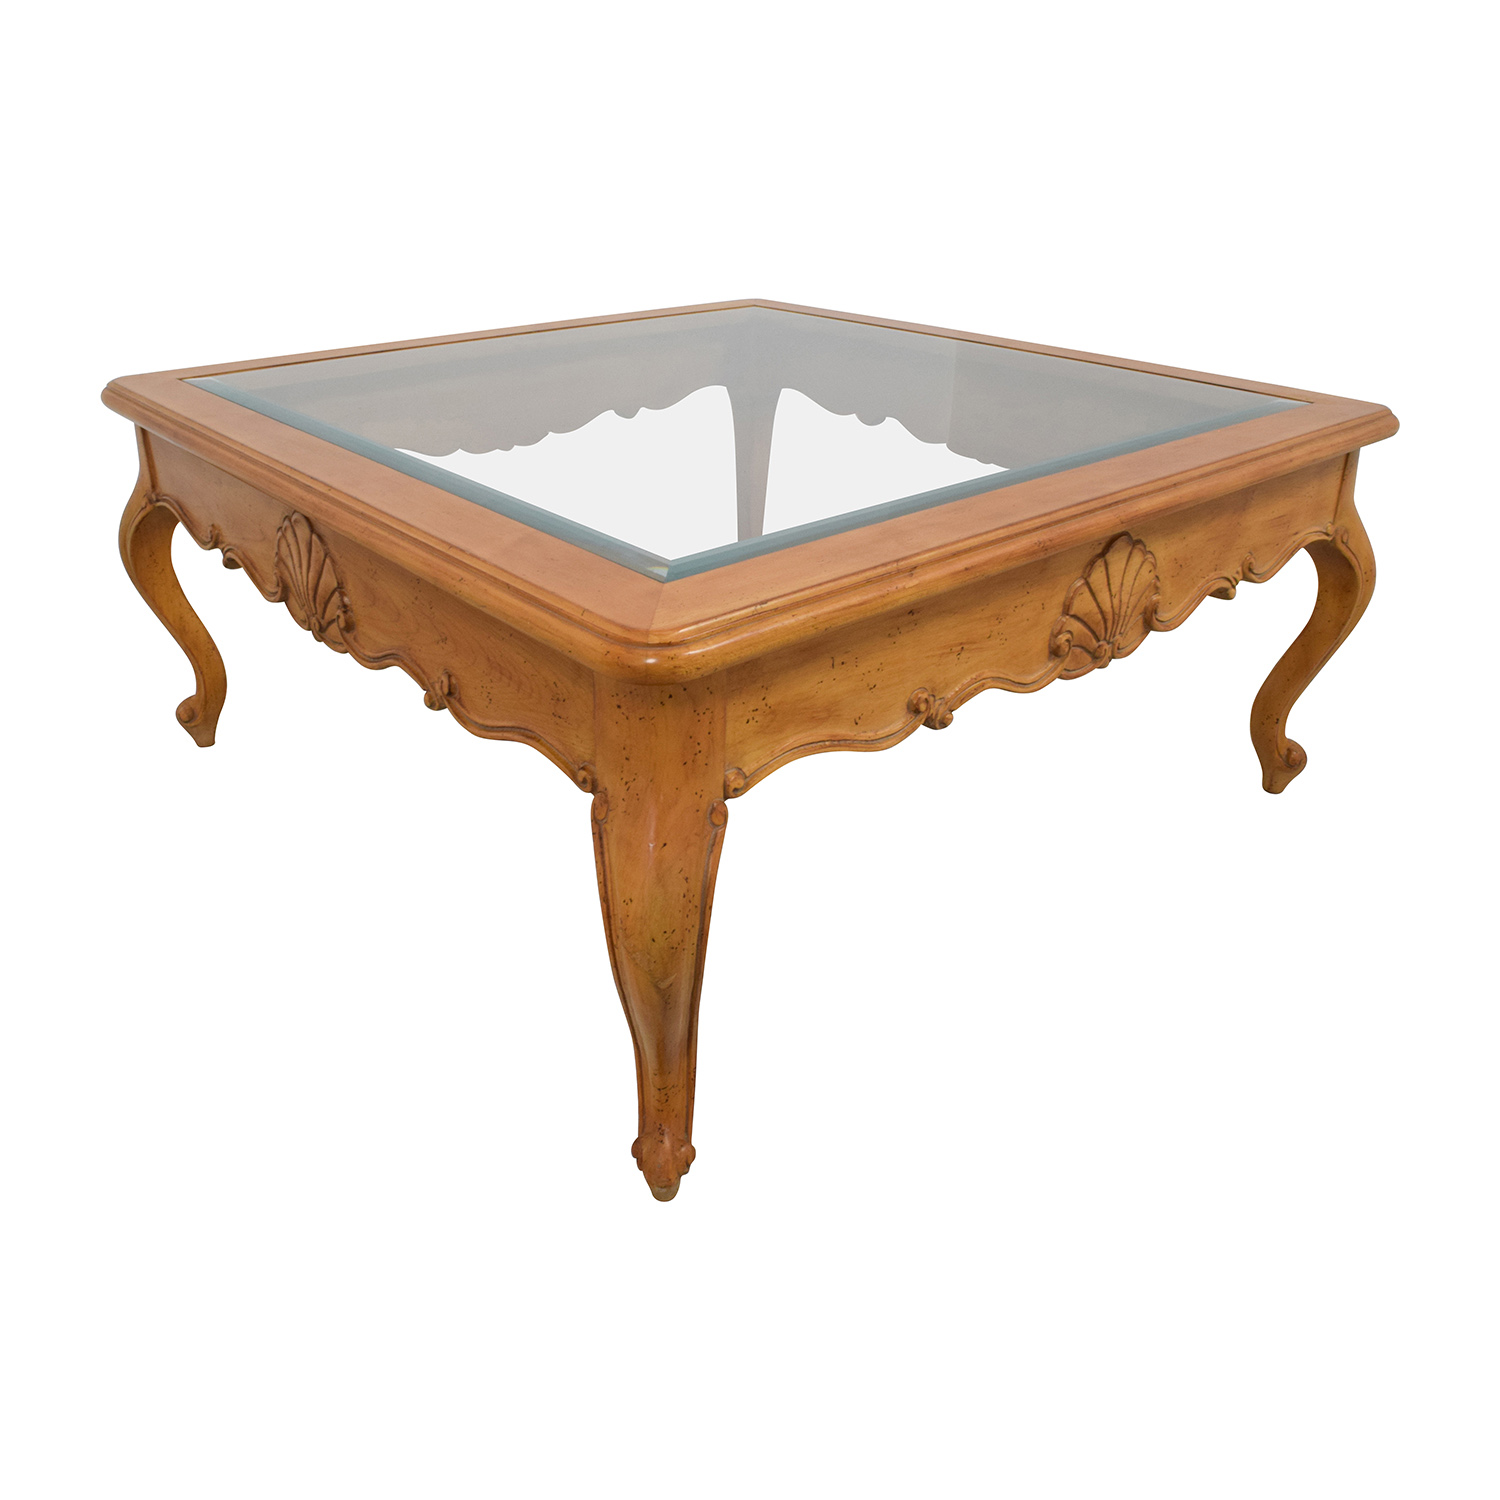 Scroll Light Wood Glass Coffee Table second hand